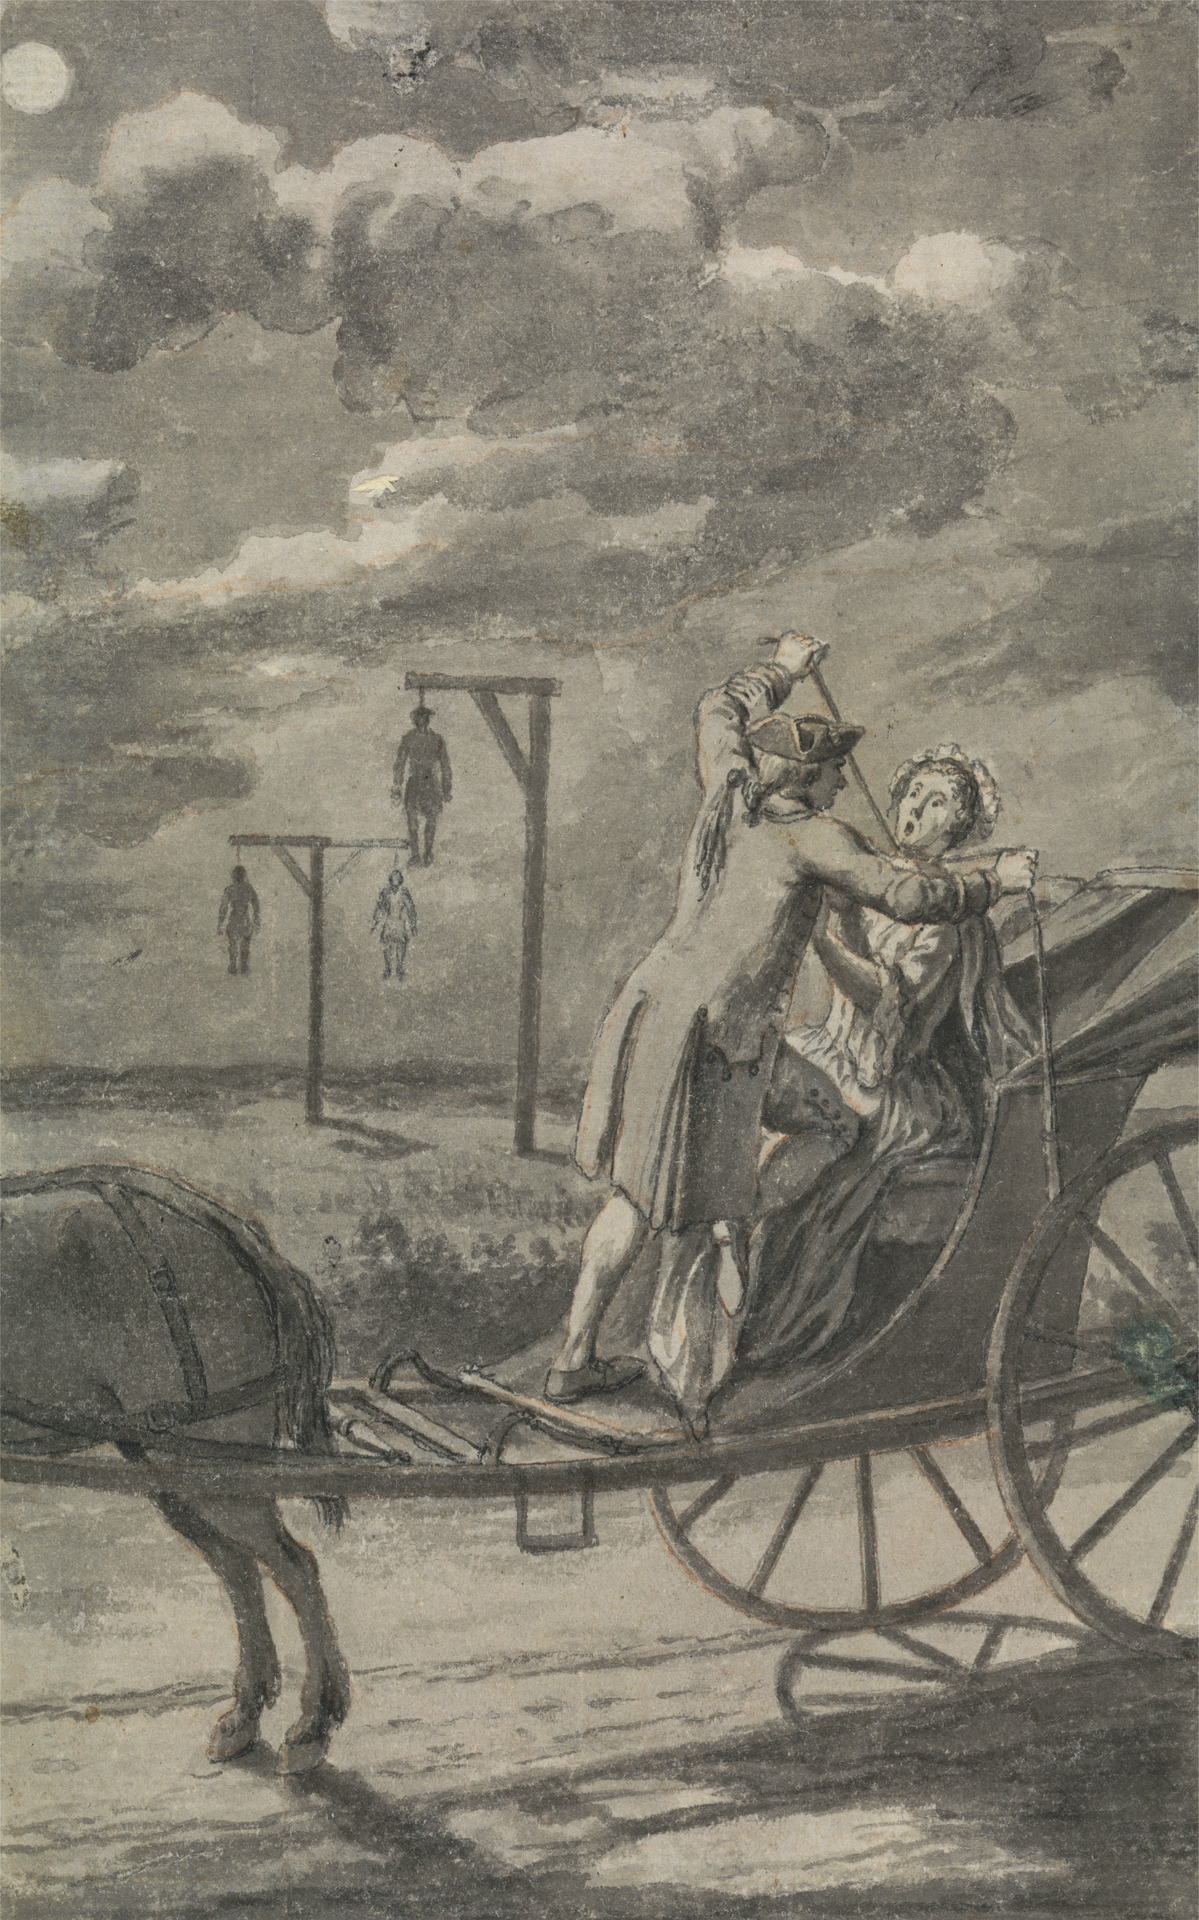 Murder in the Carriage (Probably a Design for The Tyburn Chronicle) by Samuel Wale, 1721-1786, British